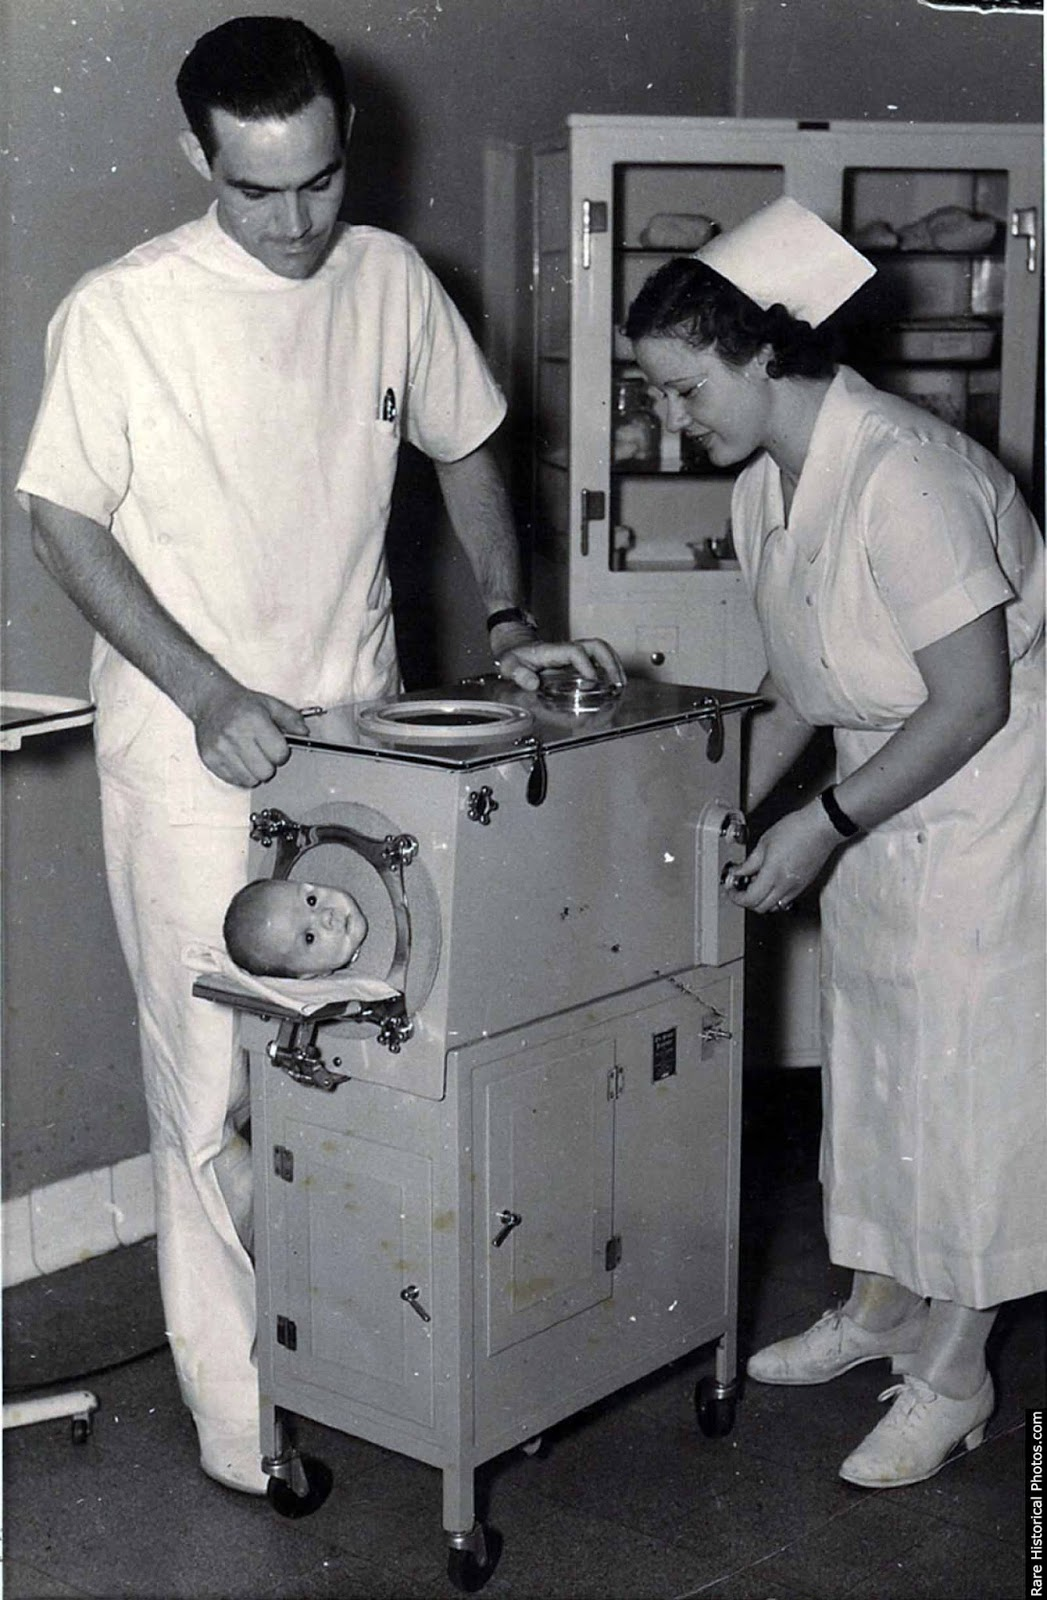 1940s pediatric iron lung.